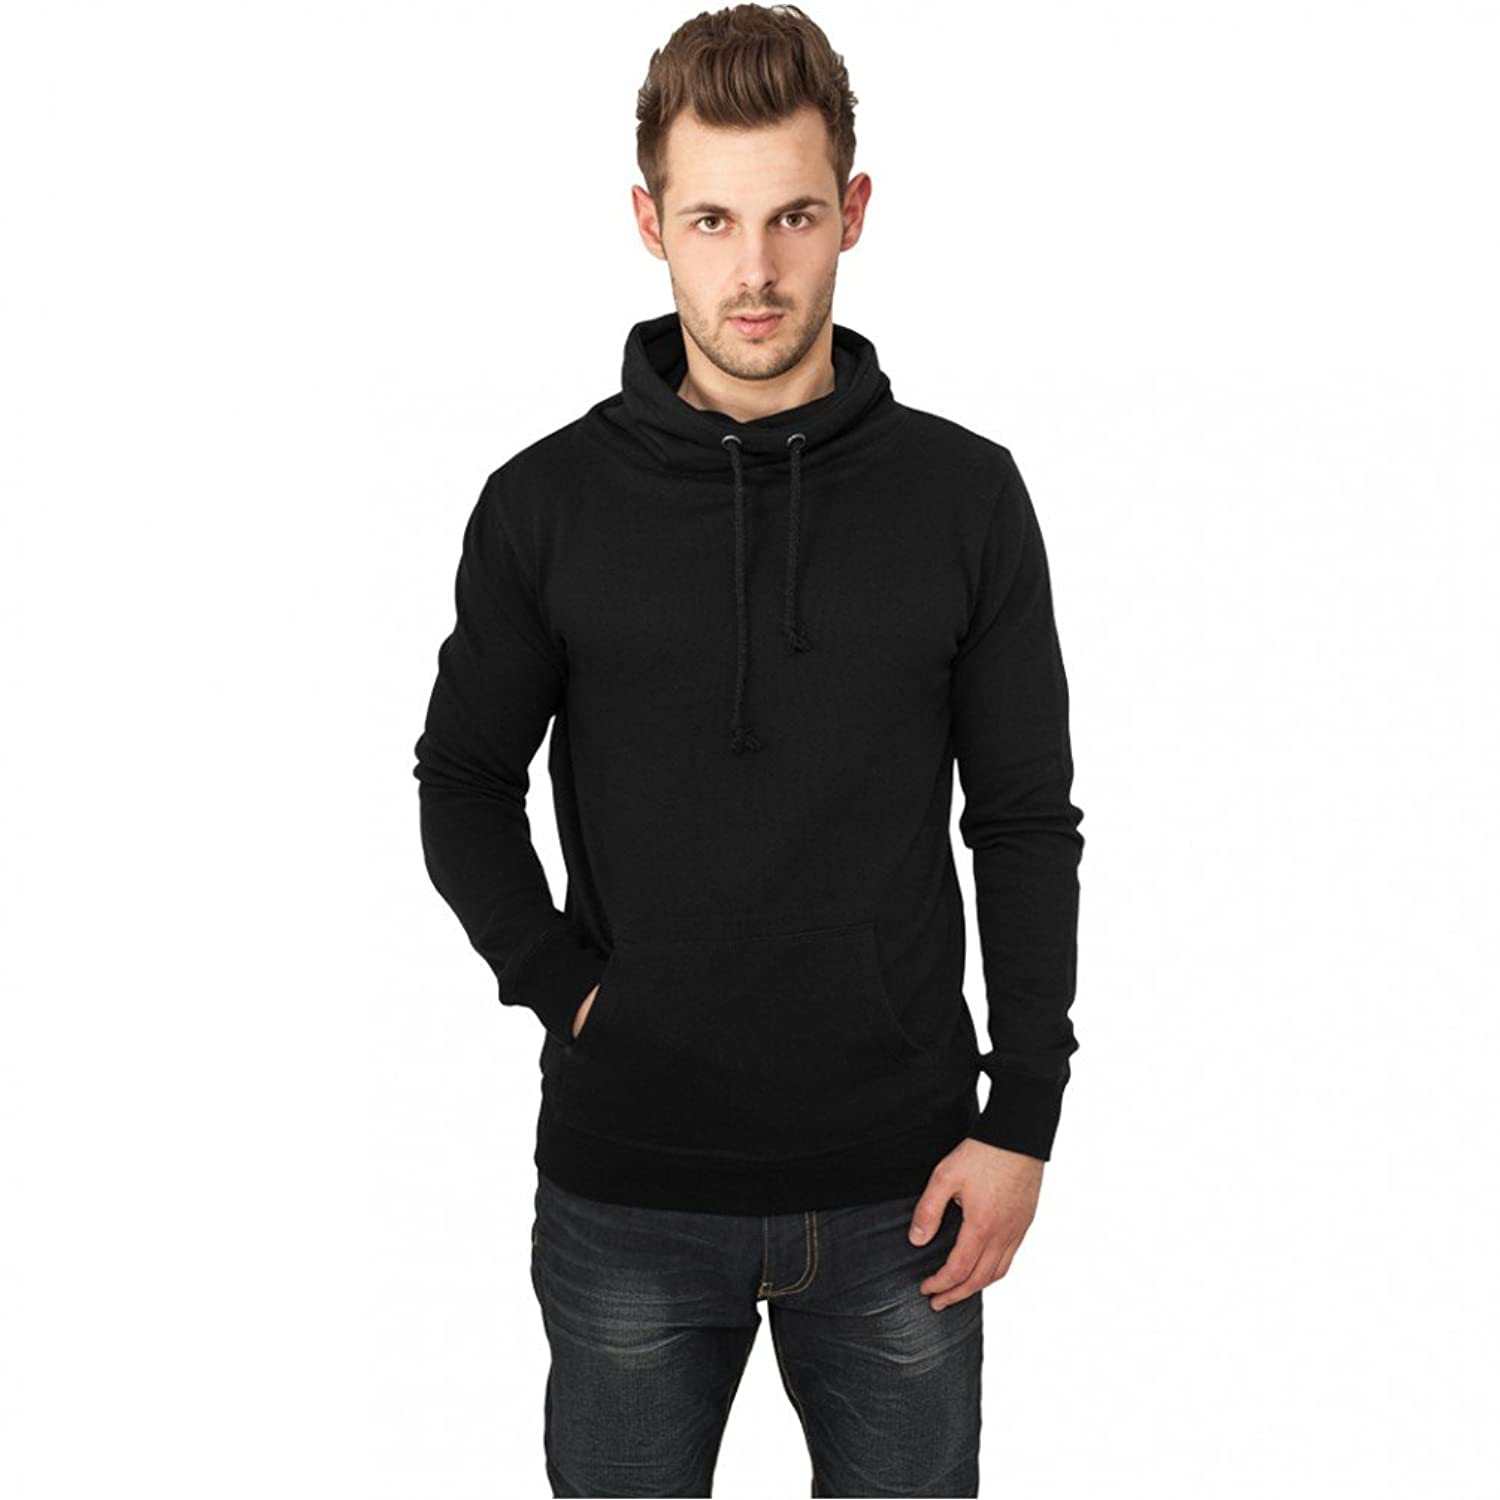 Urban Classics Melange High Neck Knitted Crew Sweatshirt grey-black